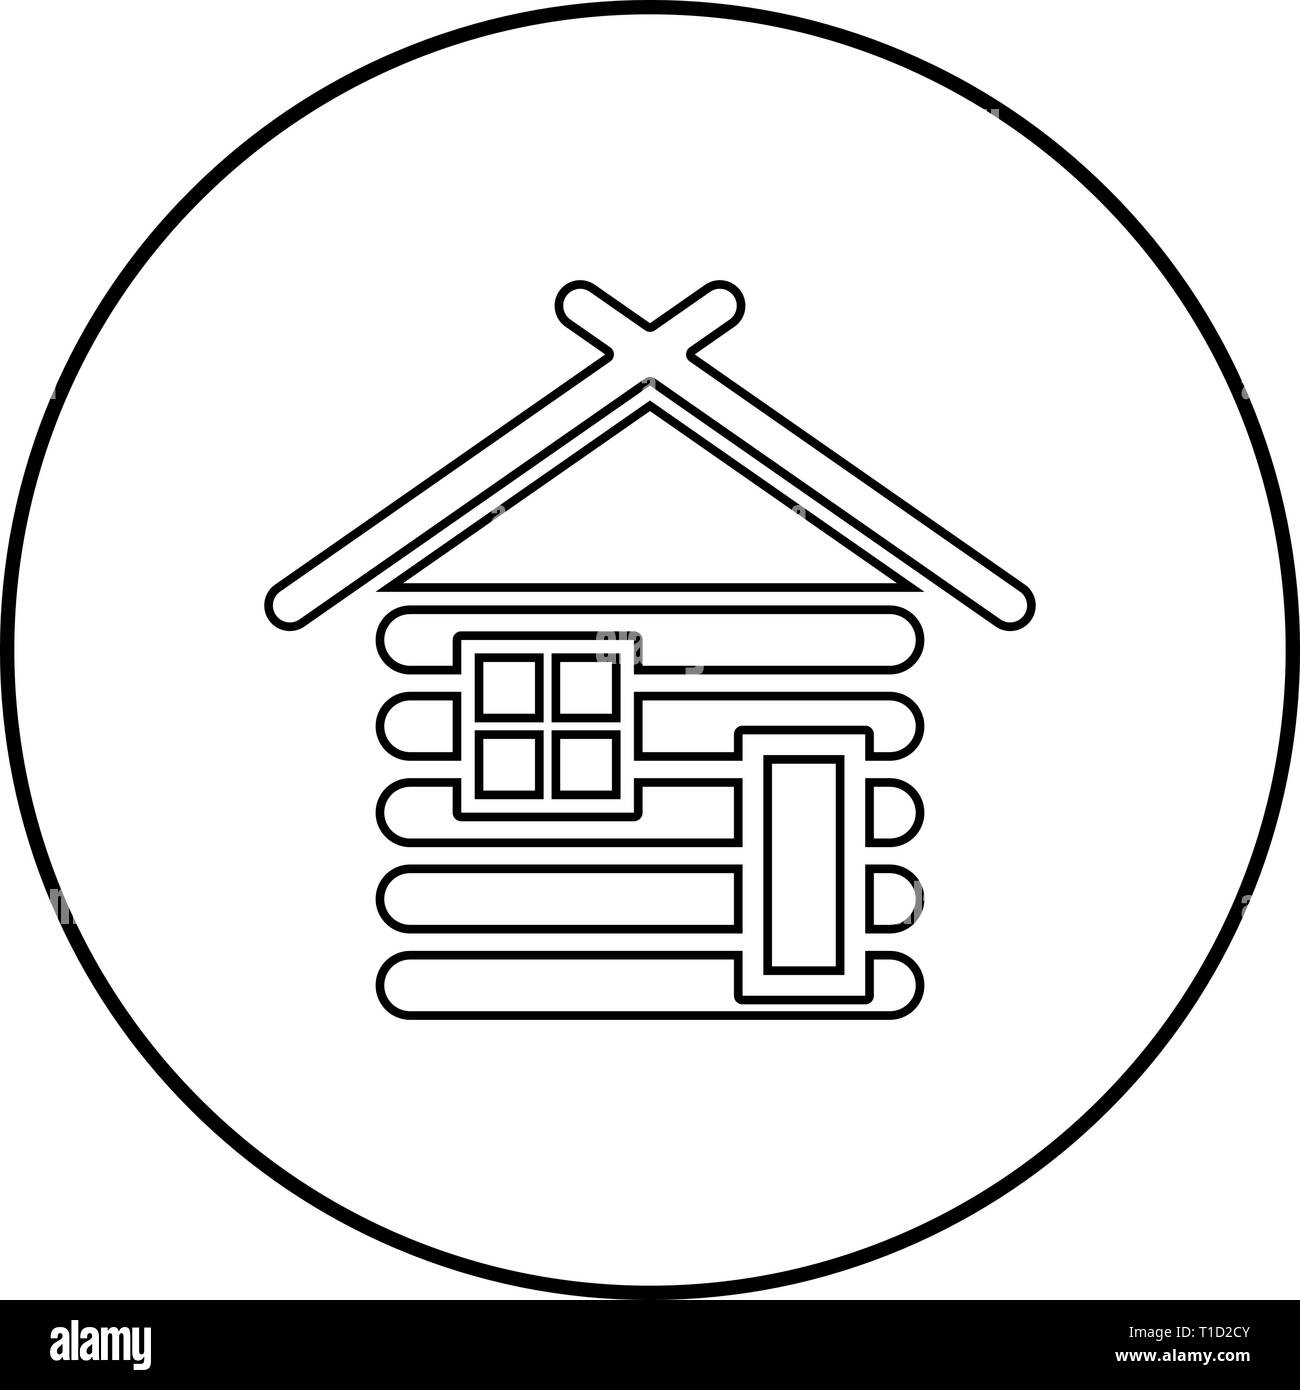 Wooden house Barn with wood Modular log cabins Wood cabin modular homes icon outline black color vector in circle round illustration flat style - Stock Vector